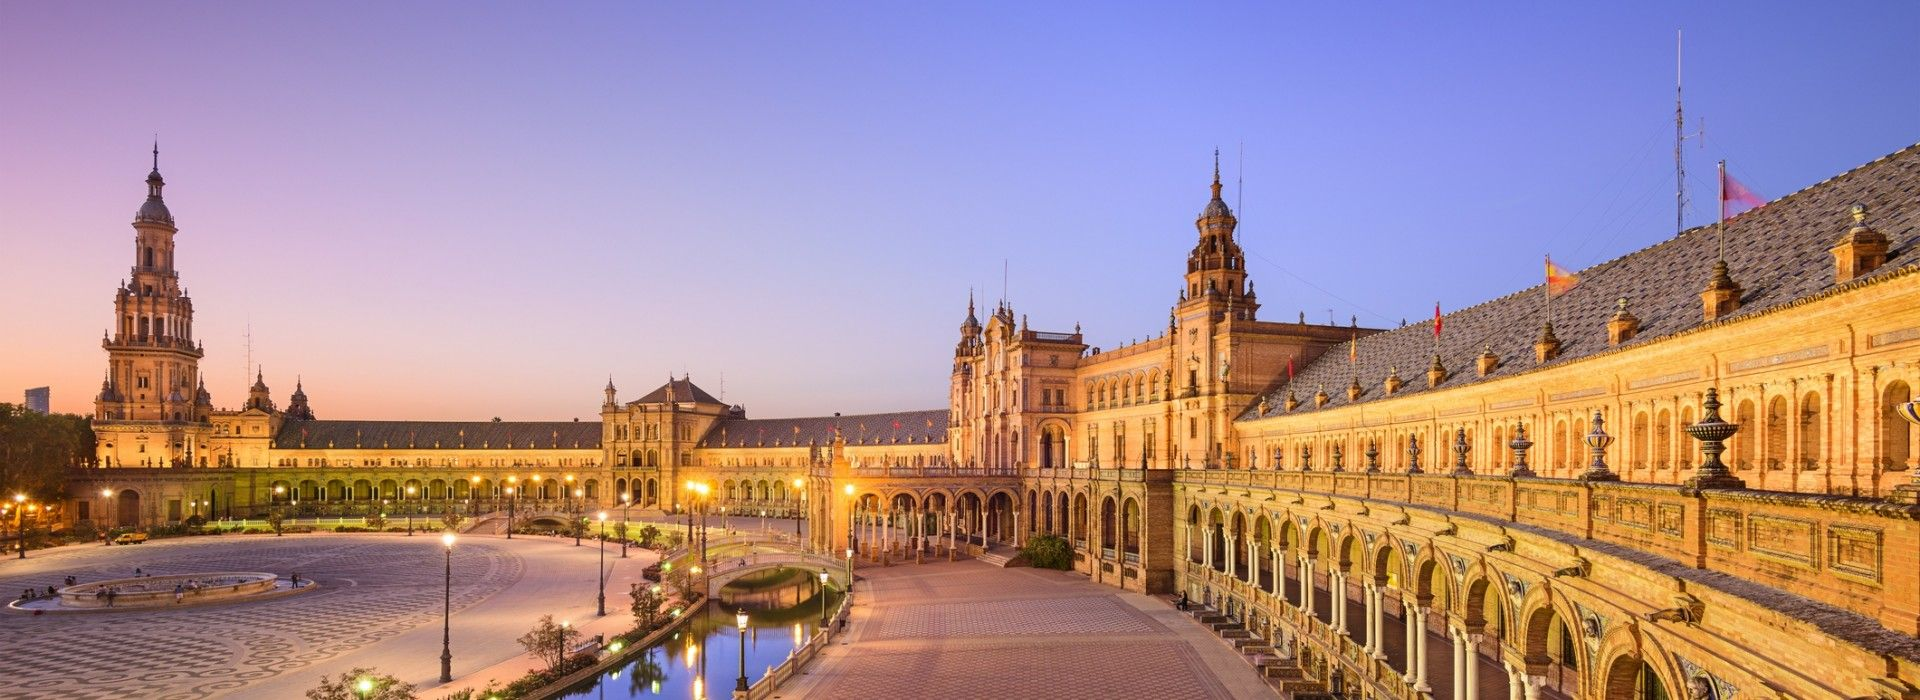 Sightseeing Tours in Spain